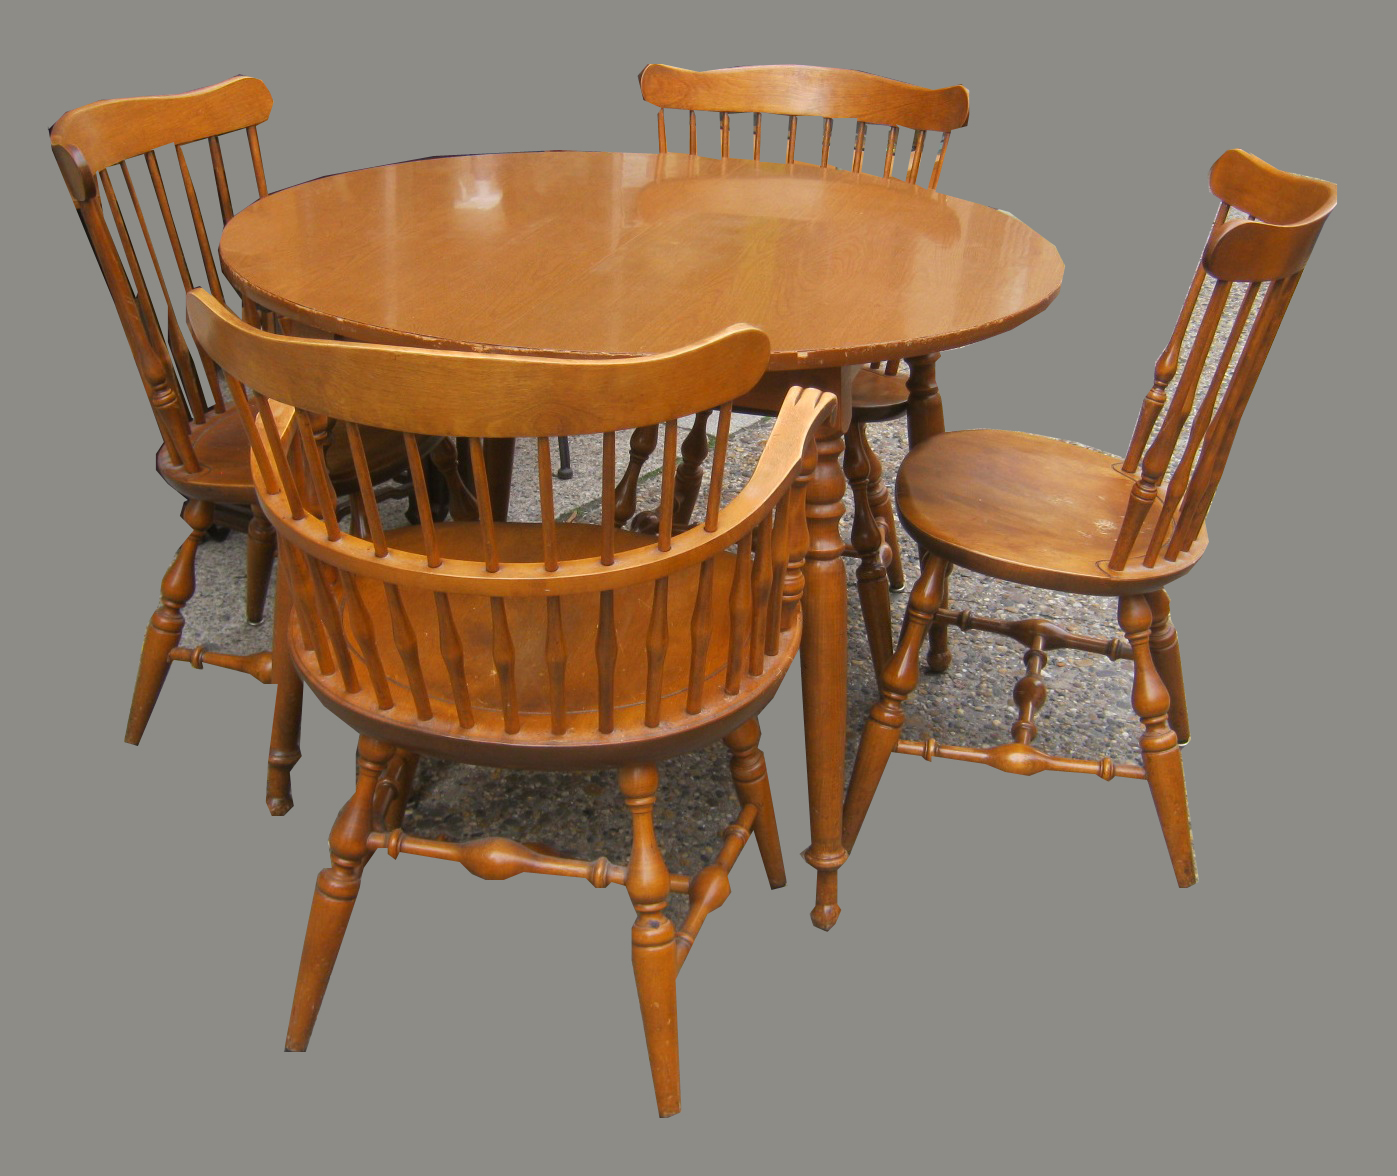 Country Kitchen Table: Uhuru Furniture & Collectibles: Country Kitchen Table W/4